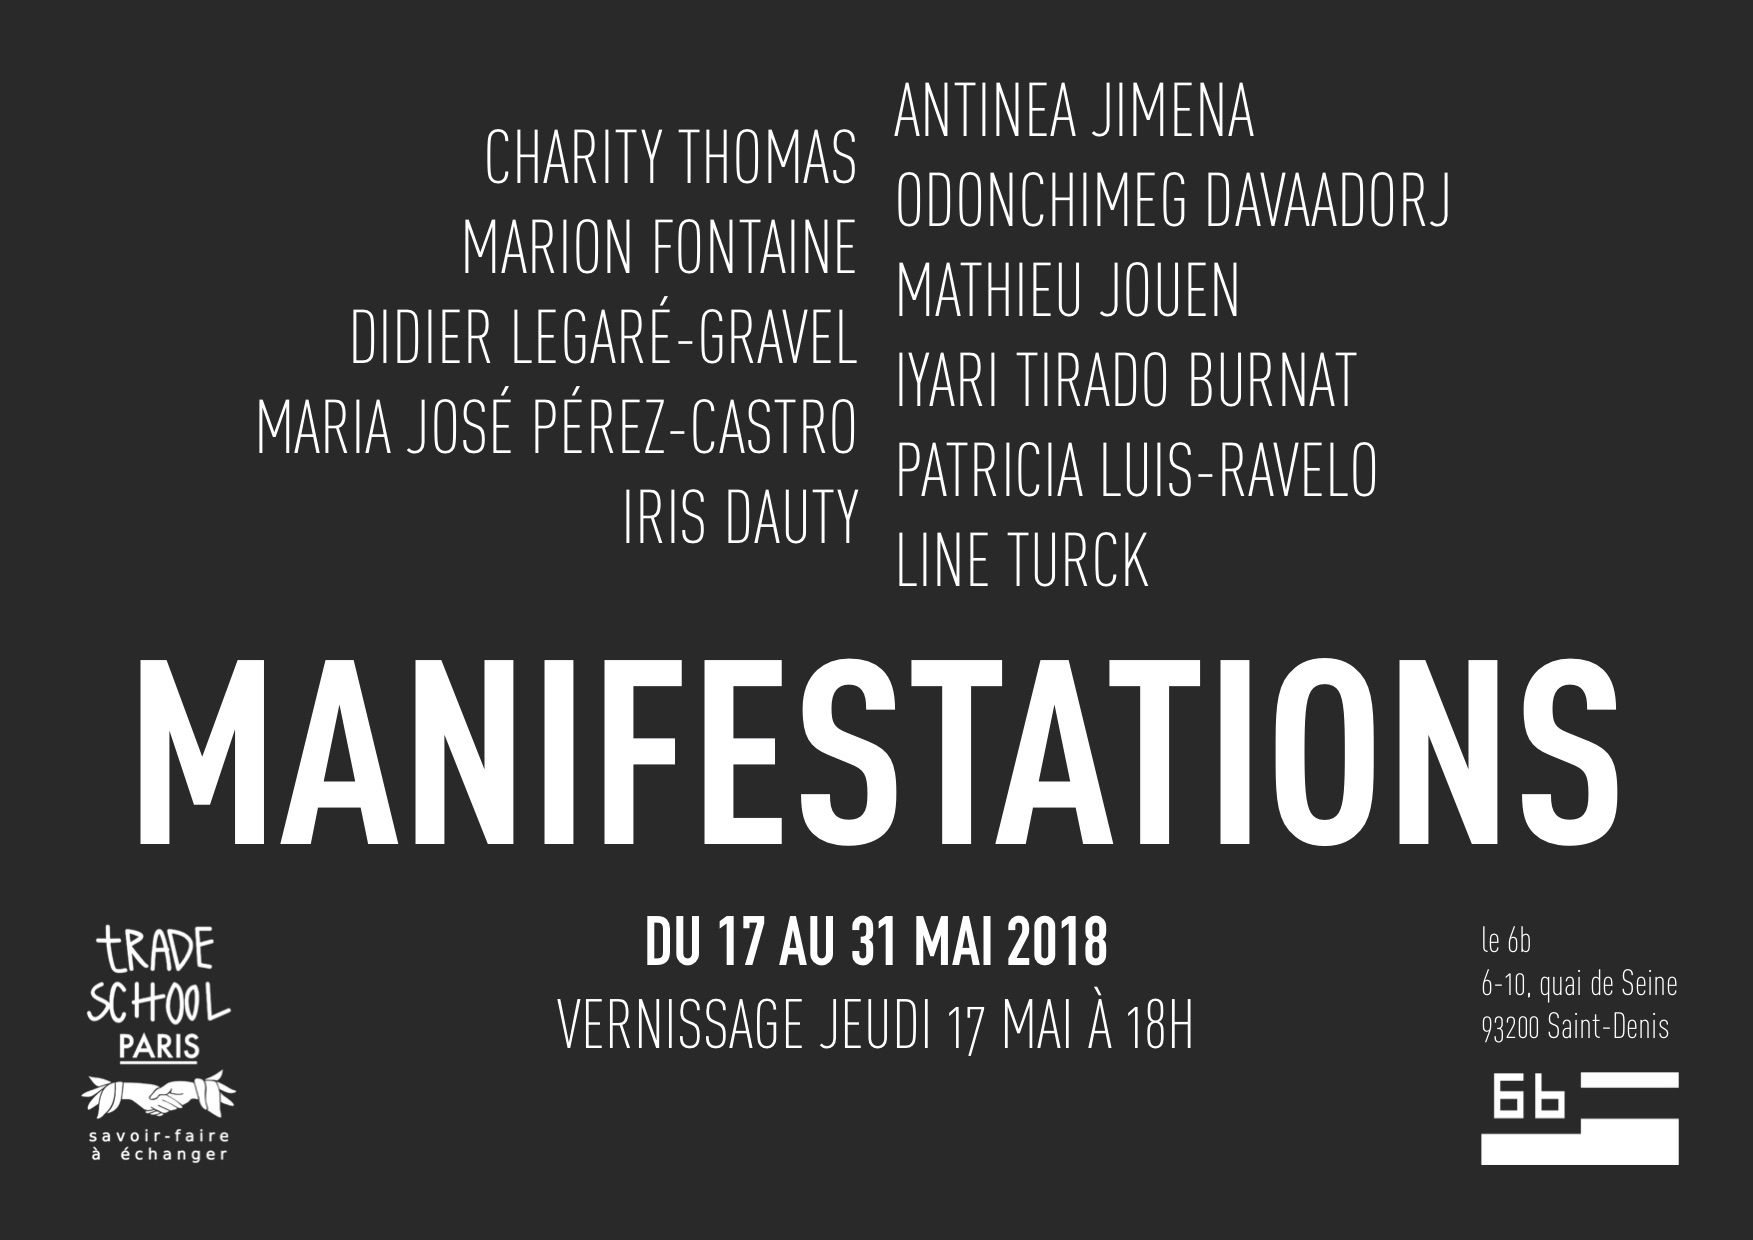 Exposition - Manifestations